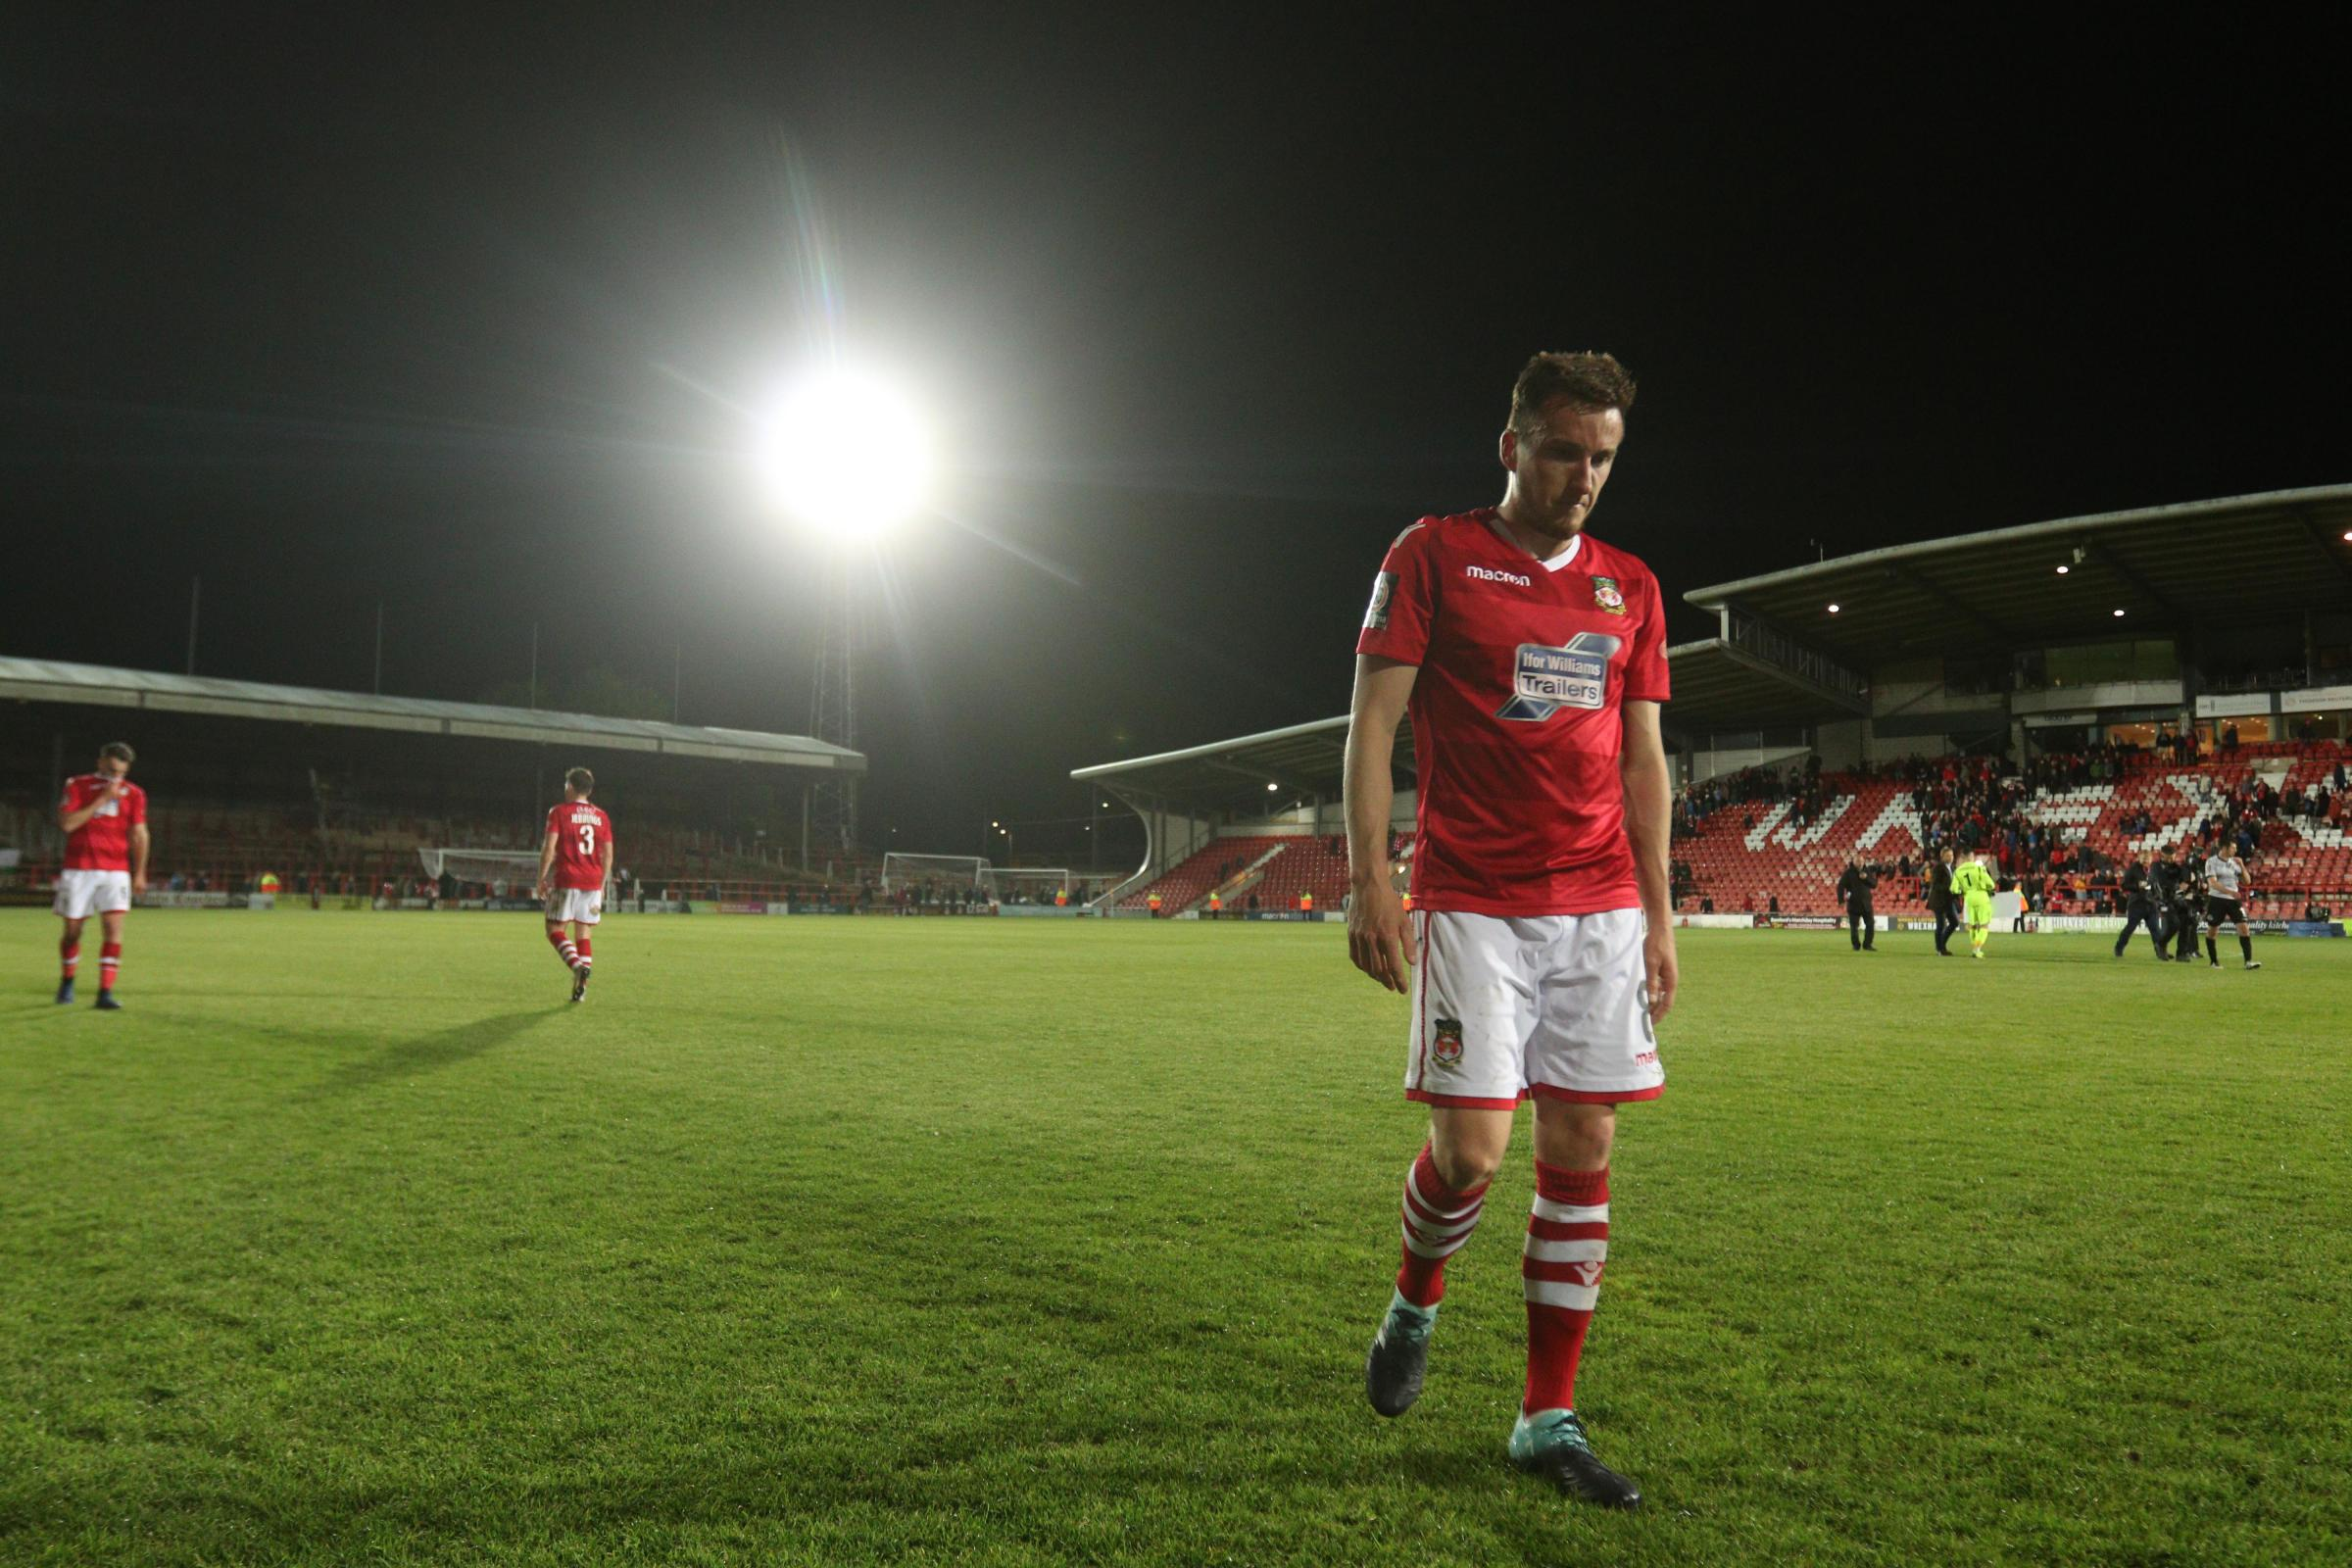 Wrexham AFC midfielder Luke Young admits play-off defeat is tough to take